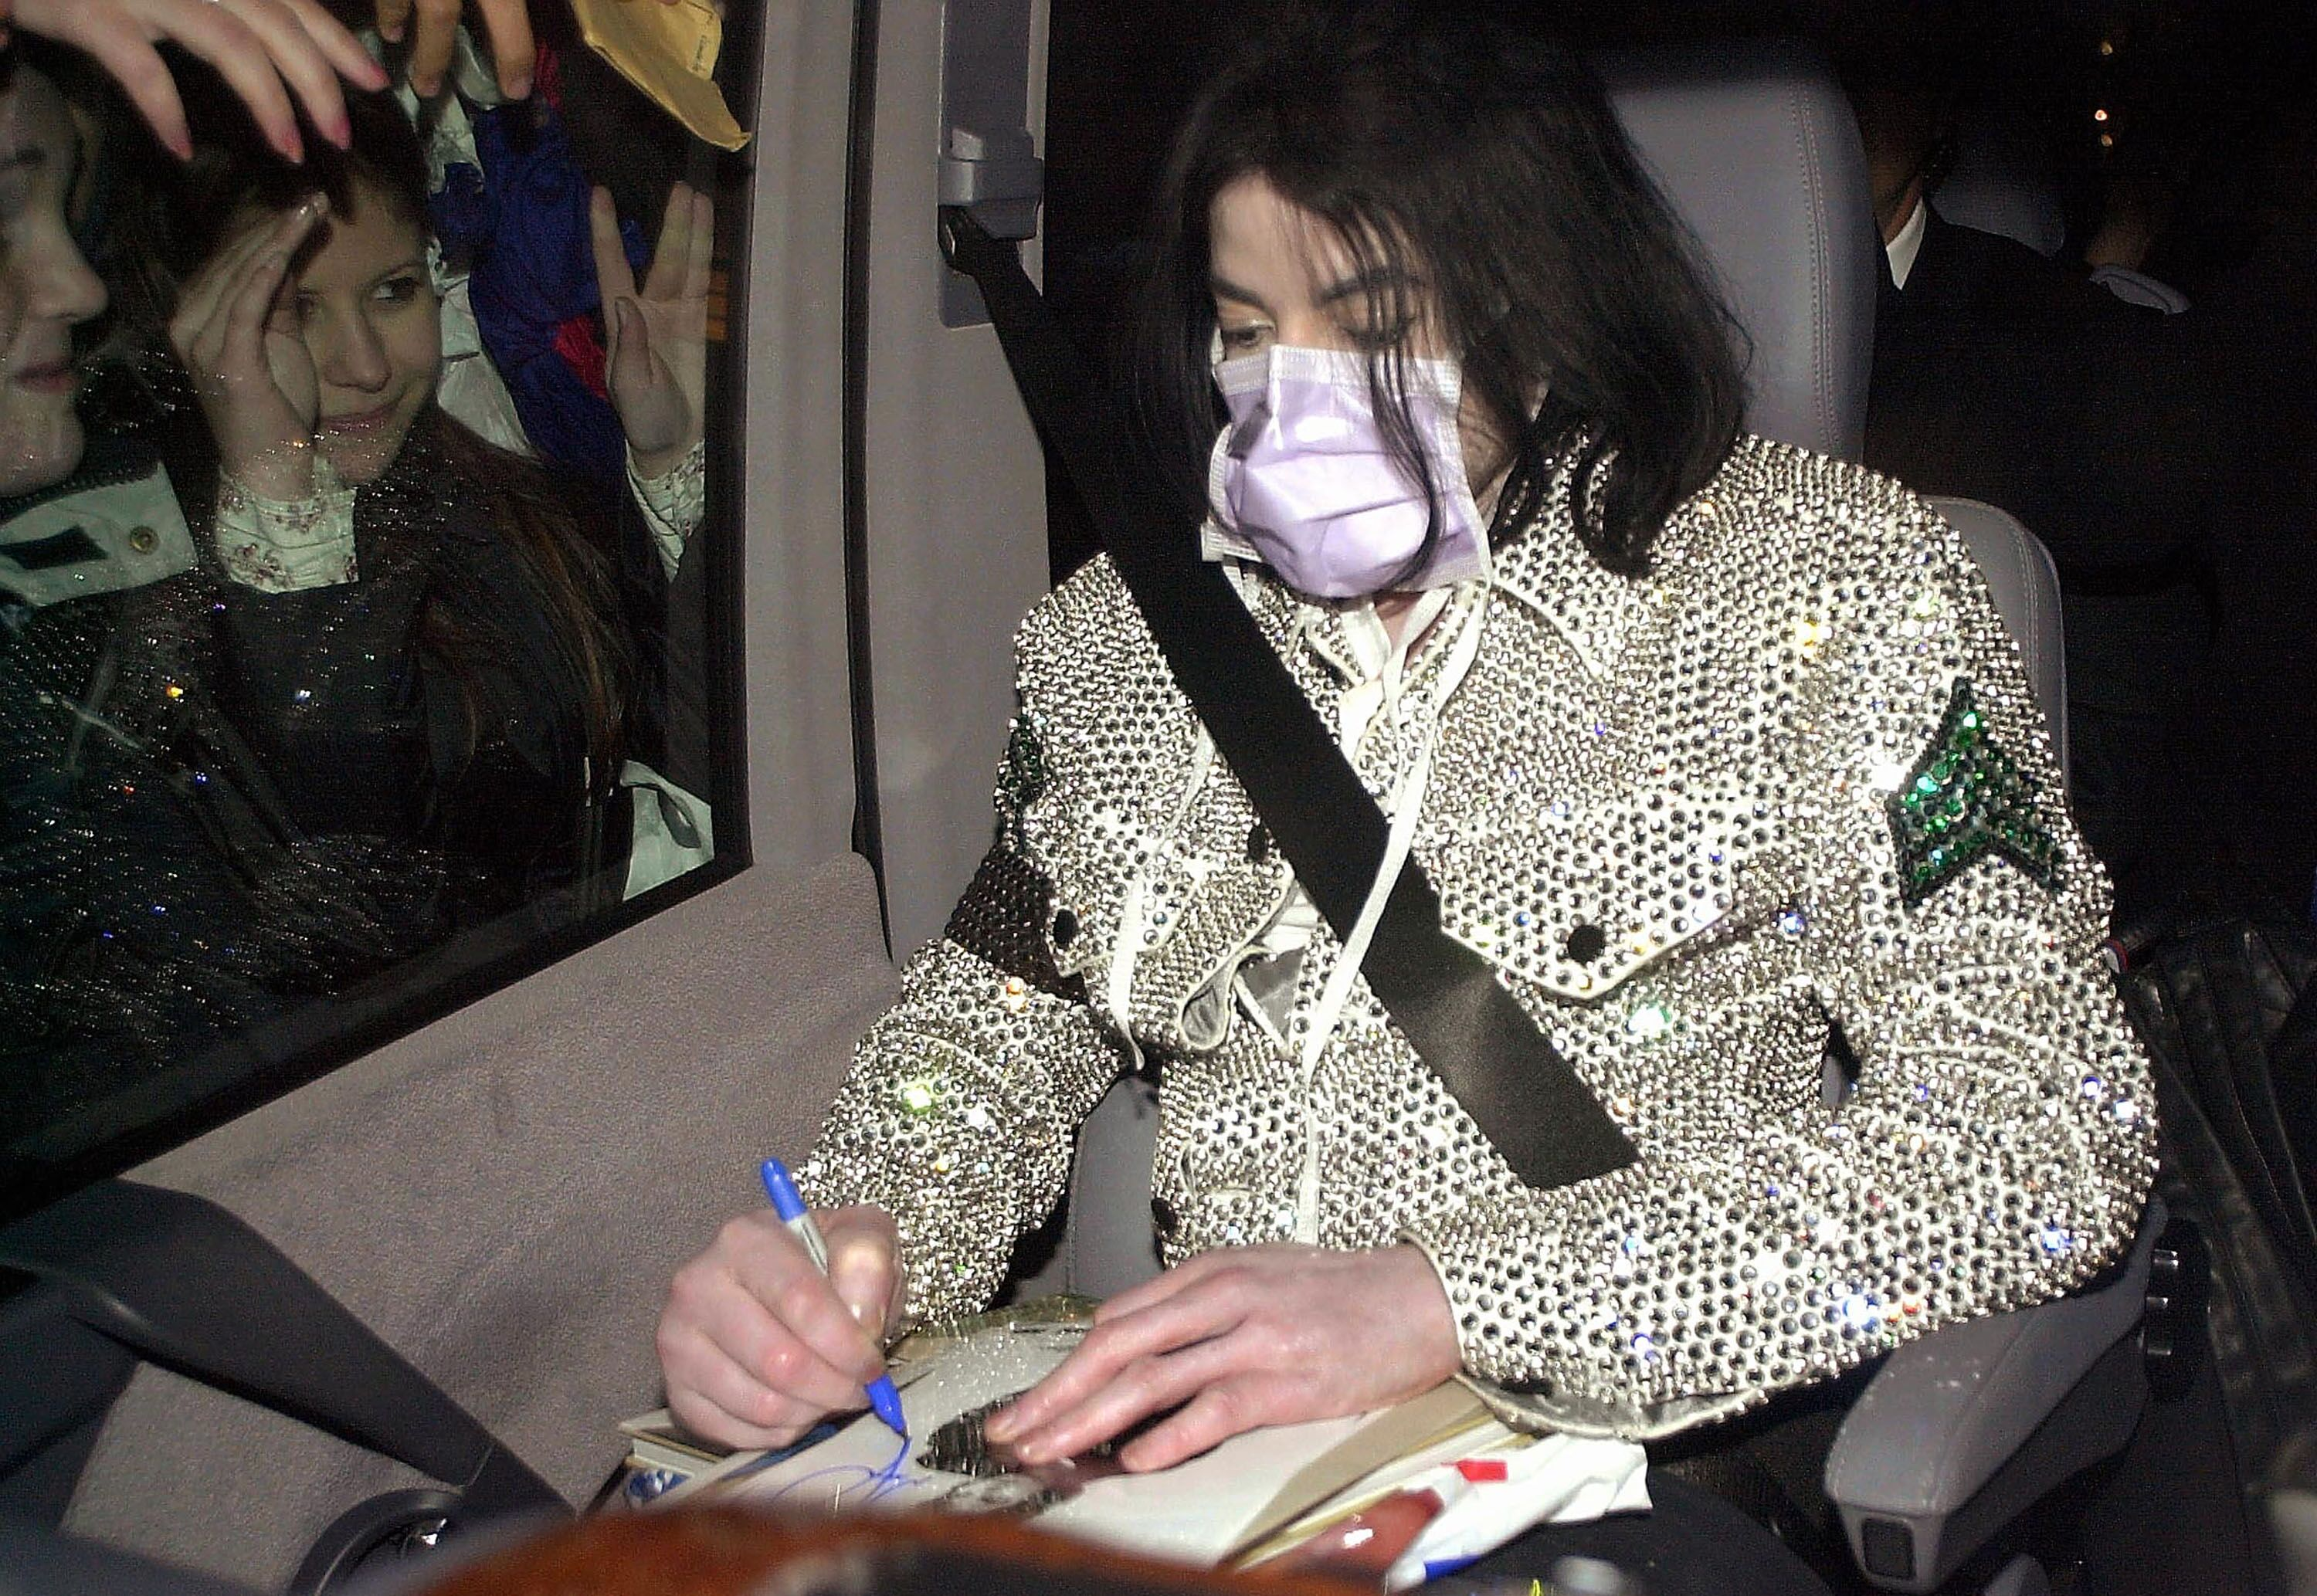 Singer Michael Jackson signs an autograph outside the Adlon Hotel in Berlin in 2002 | Source: Getty Images